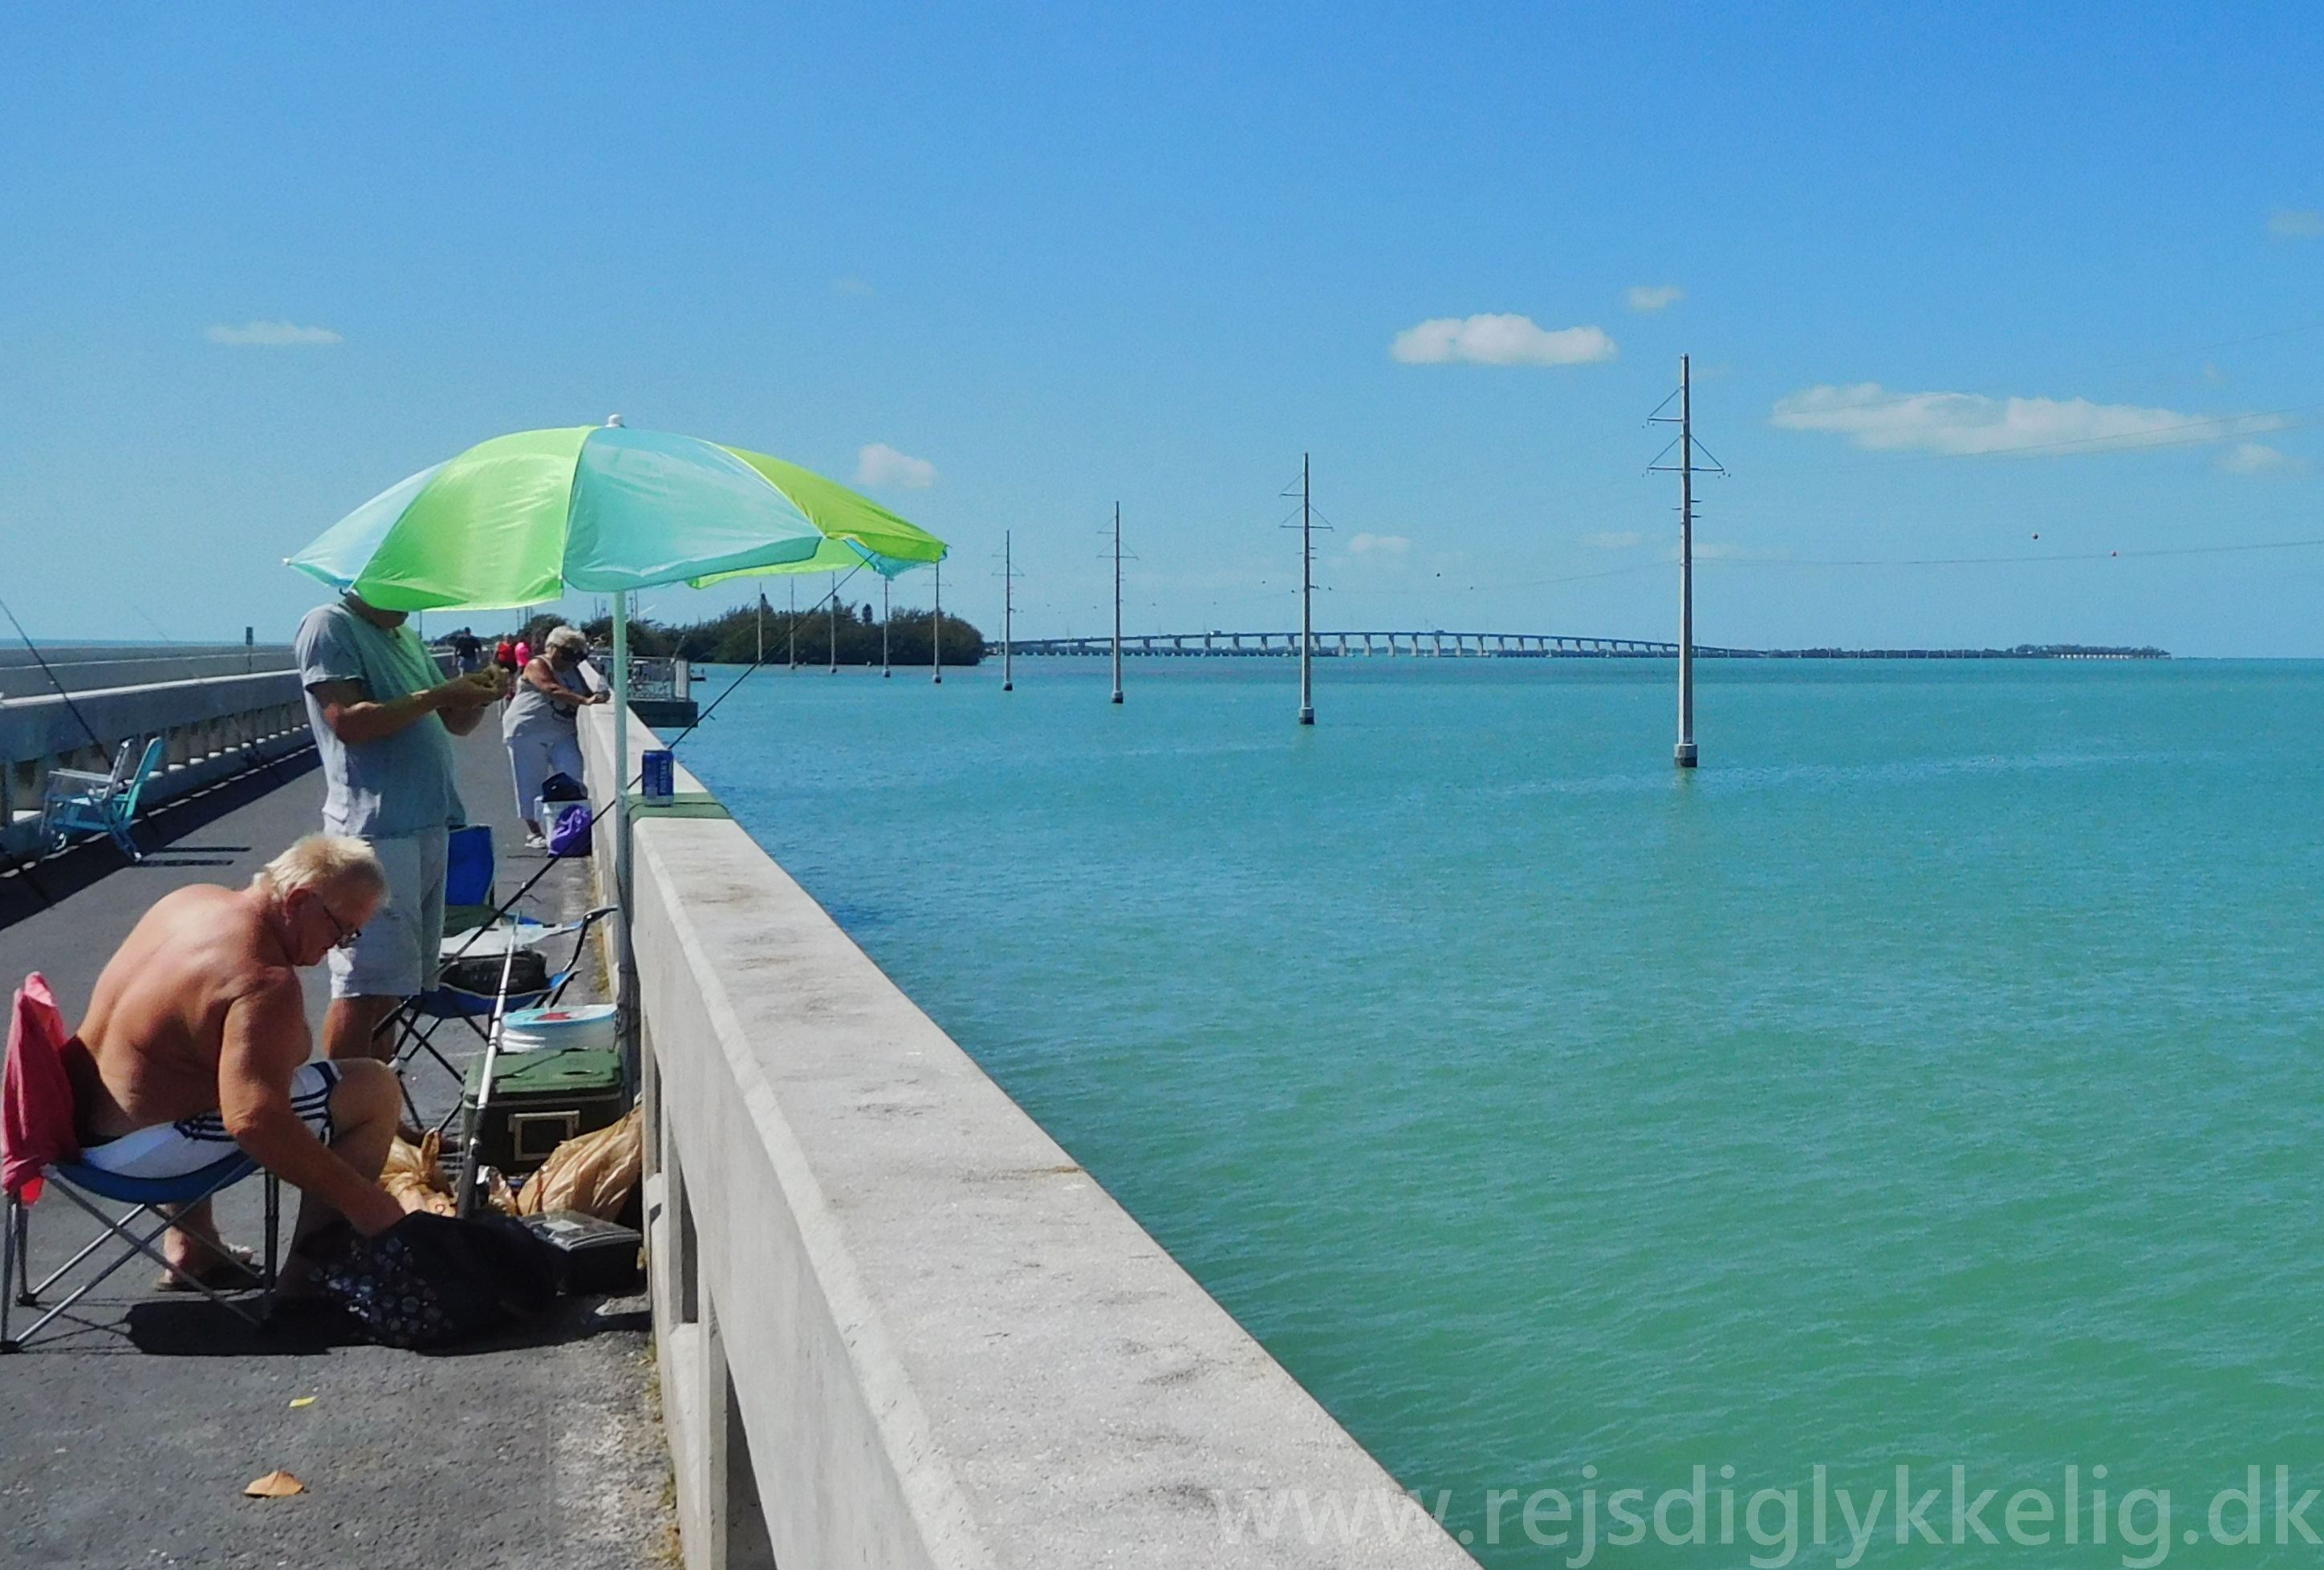 Krydser de mange broer i Florida Keys, for at nå til Key West